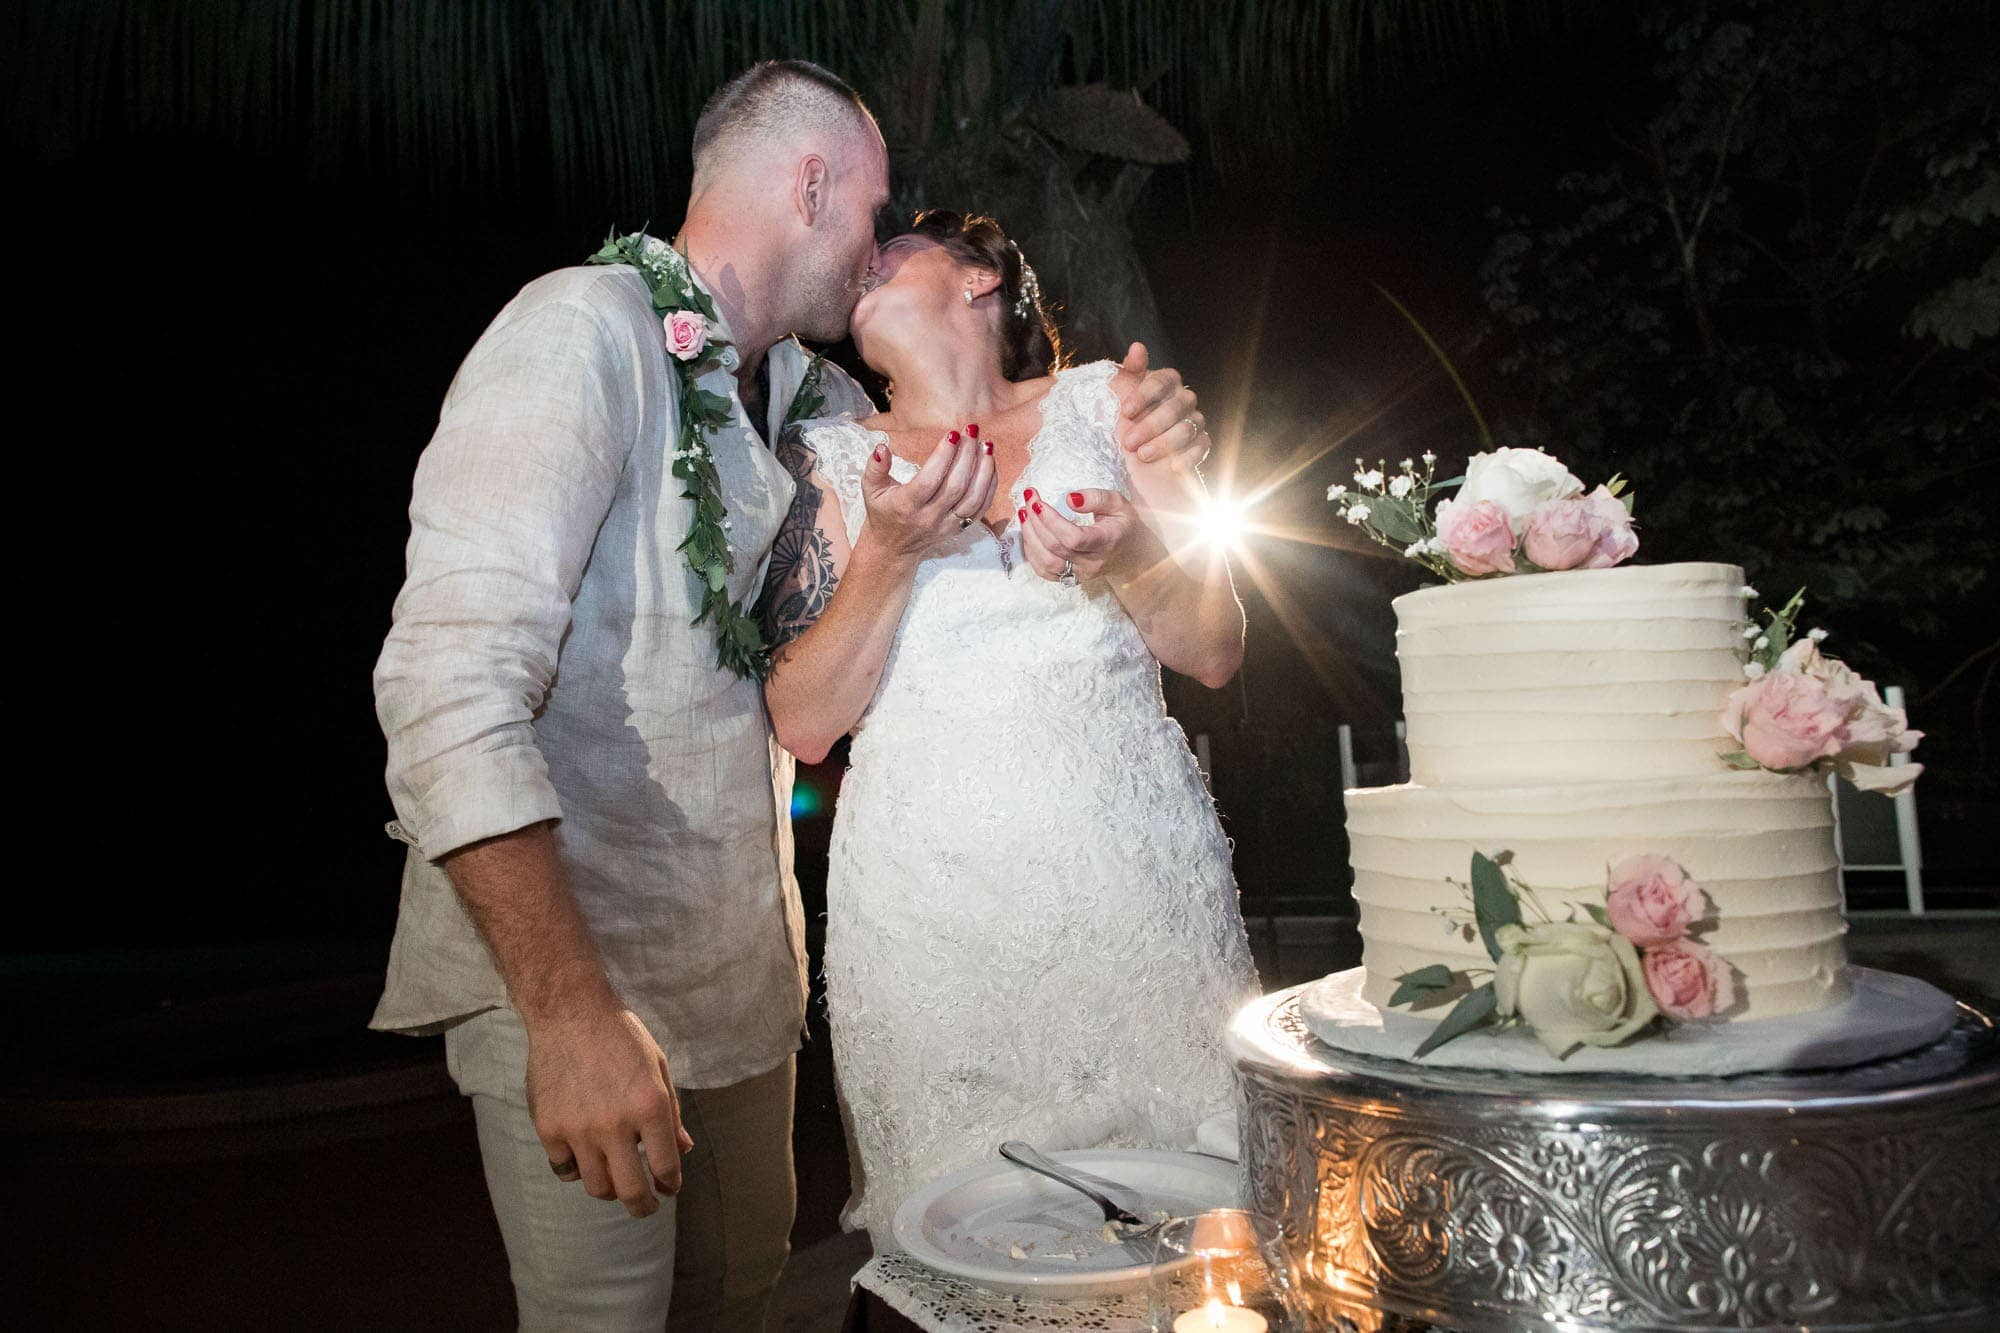 Cutting the cake and sharing a kiss